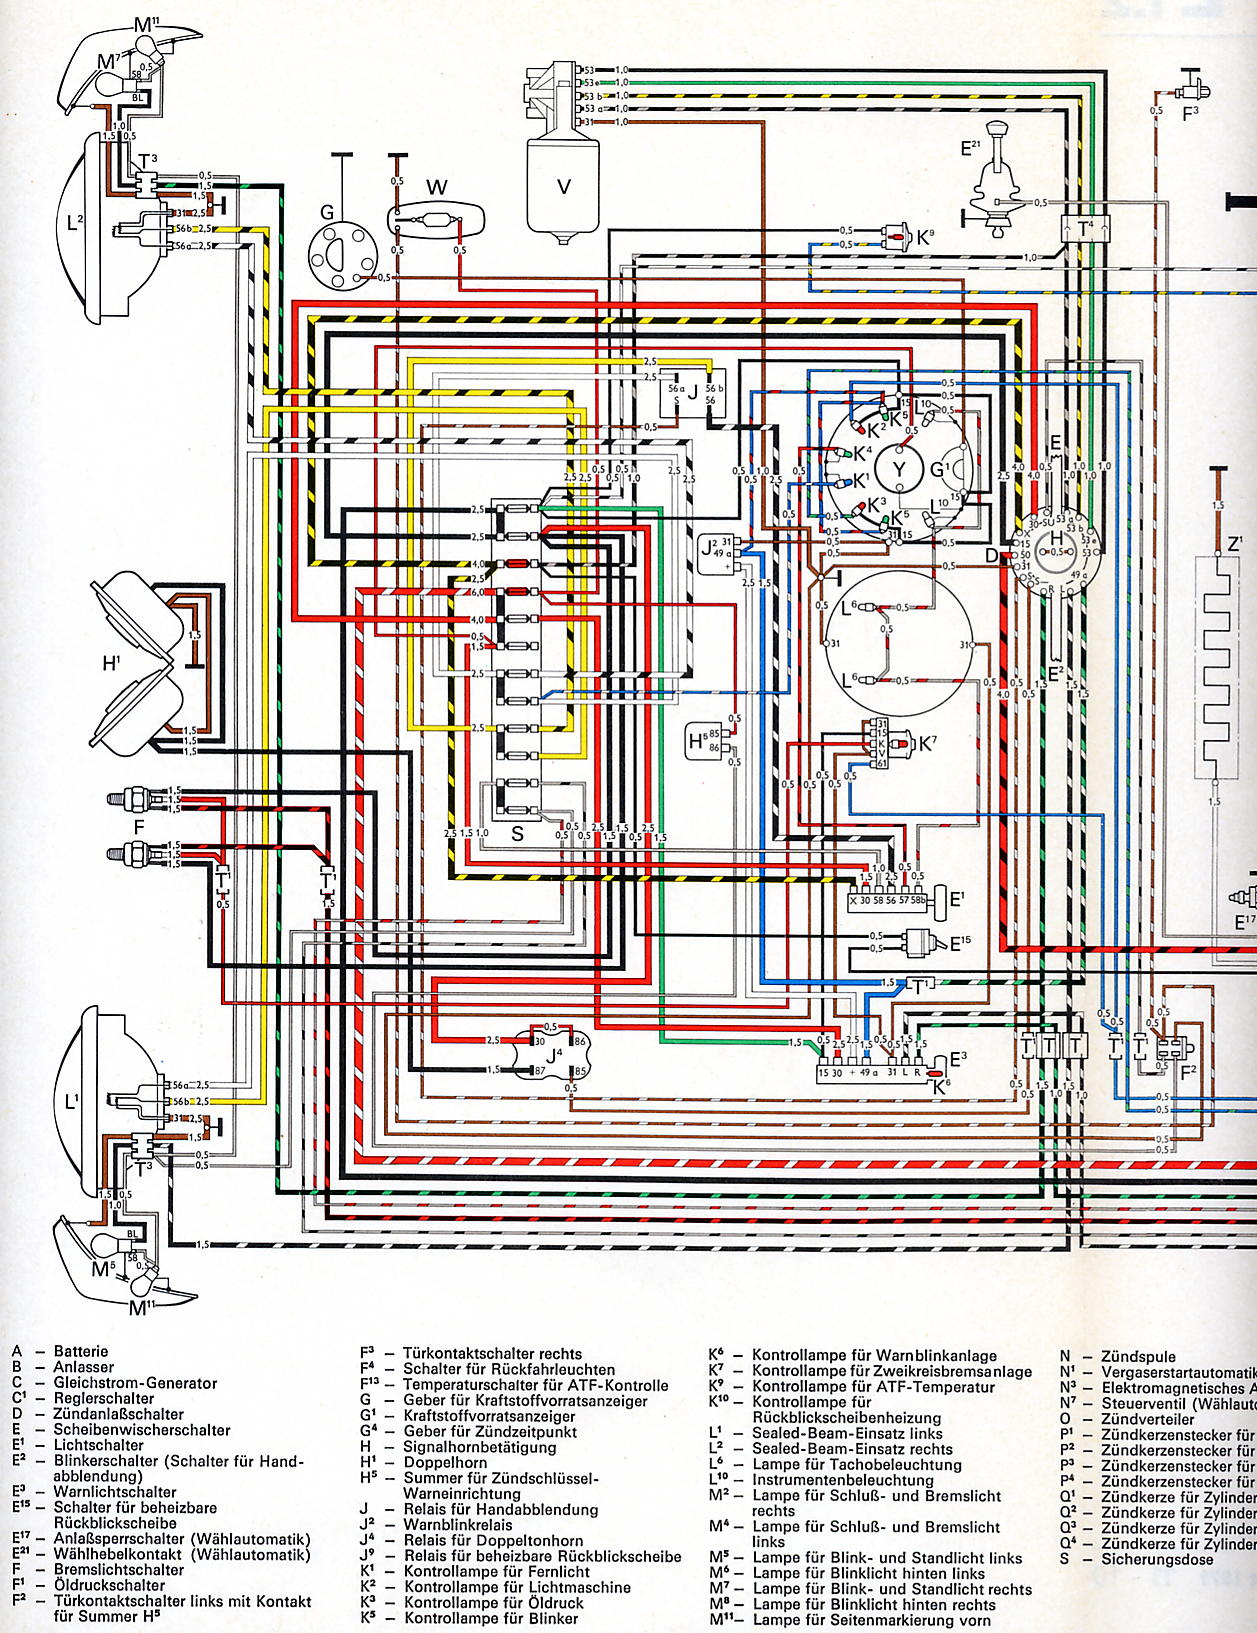 Vw Golf Mk1 Wiring Diagram Pdf 30 Images 97 Pat Tdi Fuse Box Karmann Ghia Usa From August 1971 1 Shoptalkforums Com At